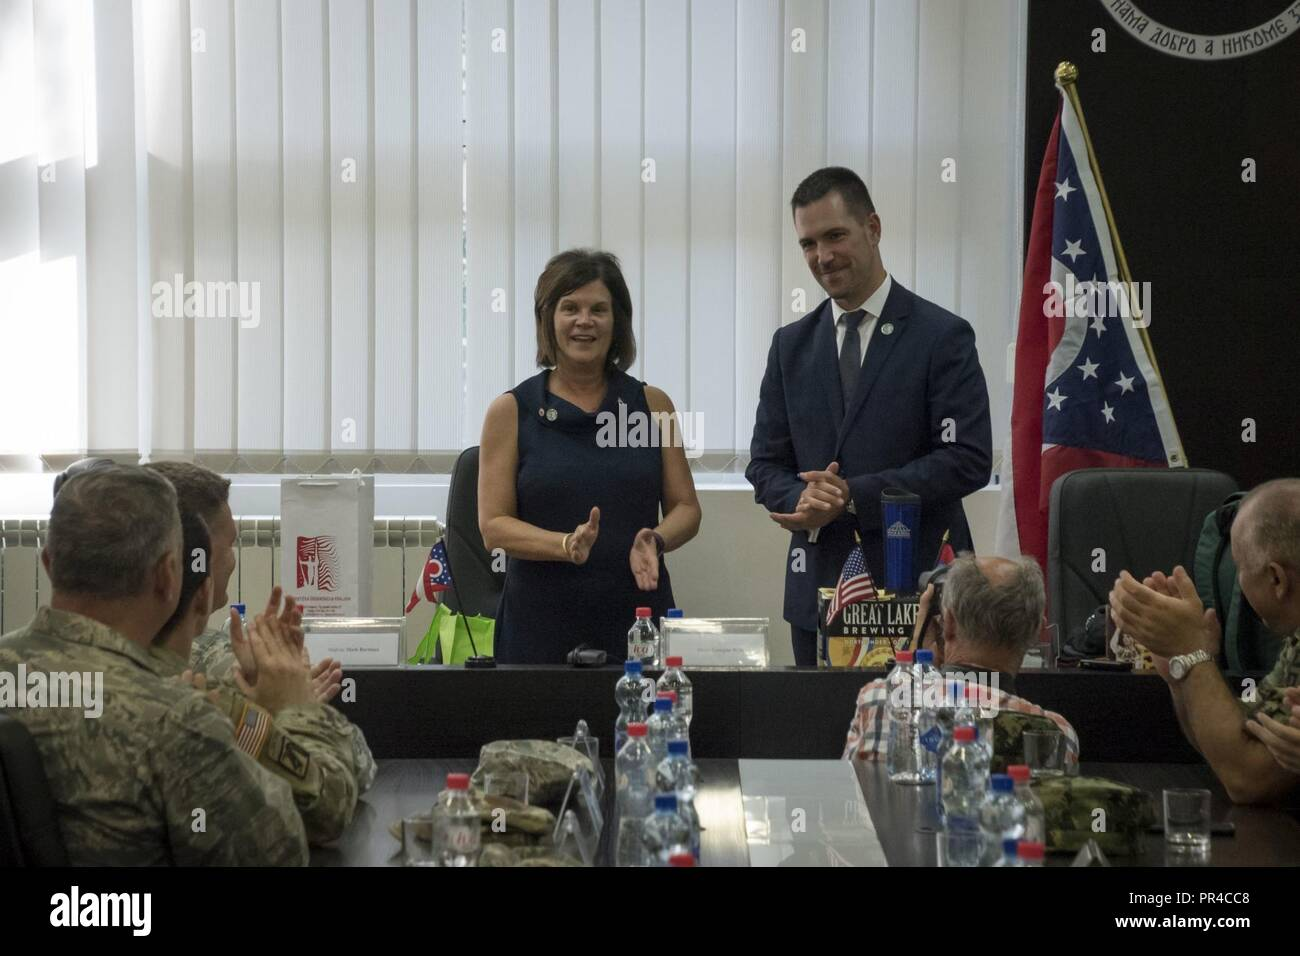 U.S. Air Force Maj. Gen. Mark E. Bartman, Ohio Adjutant General, and his Ohio National Guard delegation team visit Kraljevo, Serbia, as Mayor of South Euclid, Georgine Welo, and Mayor of Kraljevo, Predrag Terzić sign a memorandum of understanding between the two newly formed sister cities, Sept. 7, 2018. CAPSTONE 2018 is the annual culmination of the year's events to highlight the Serbian-OHNG partnership, which will focus on garrison command, chaplain, medical planning and distinguished leader meetings between key senior members from the Ohio National Guard and Serbia. - Stock Image